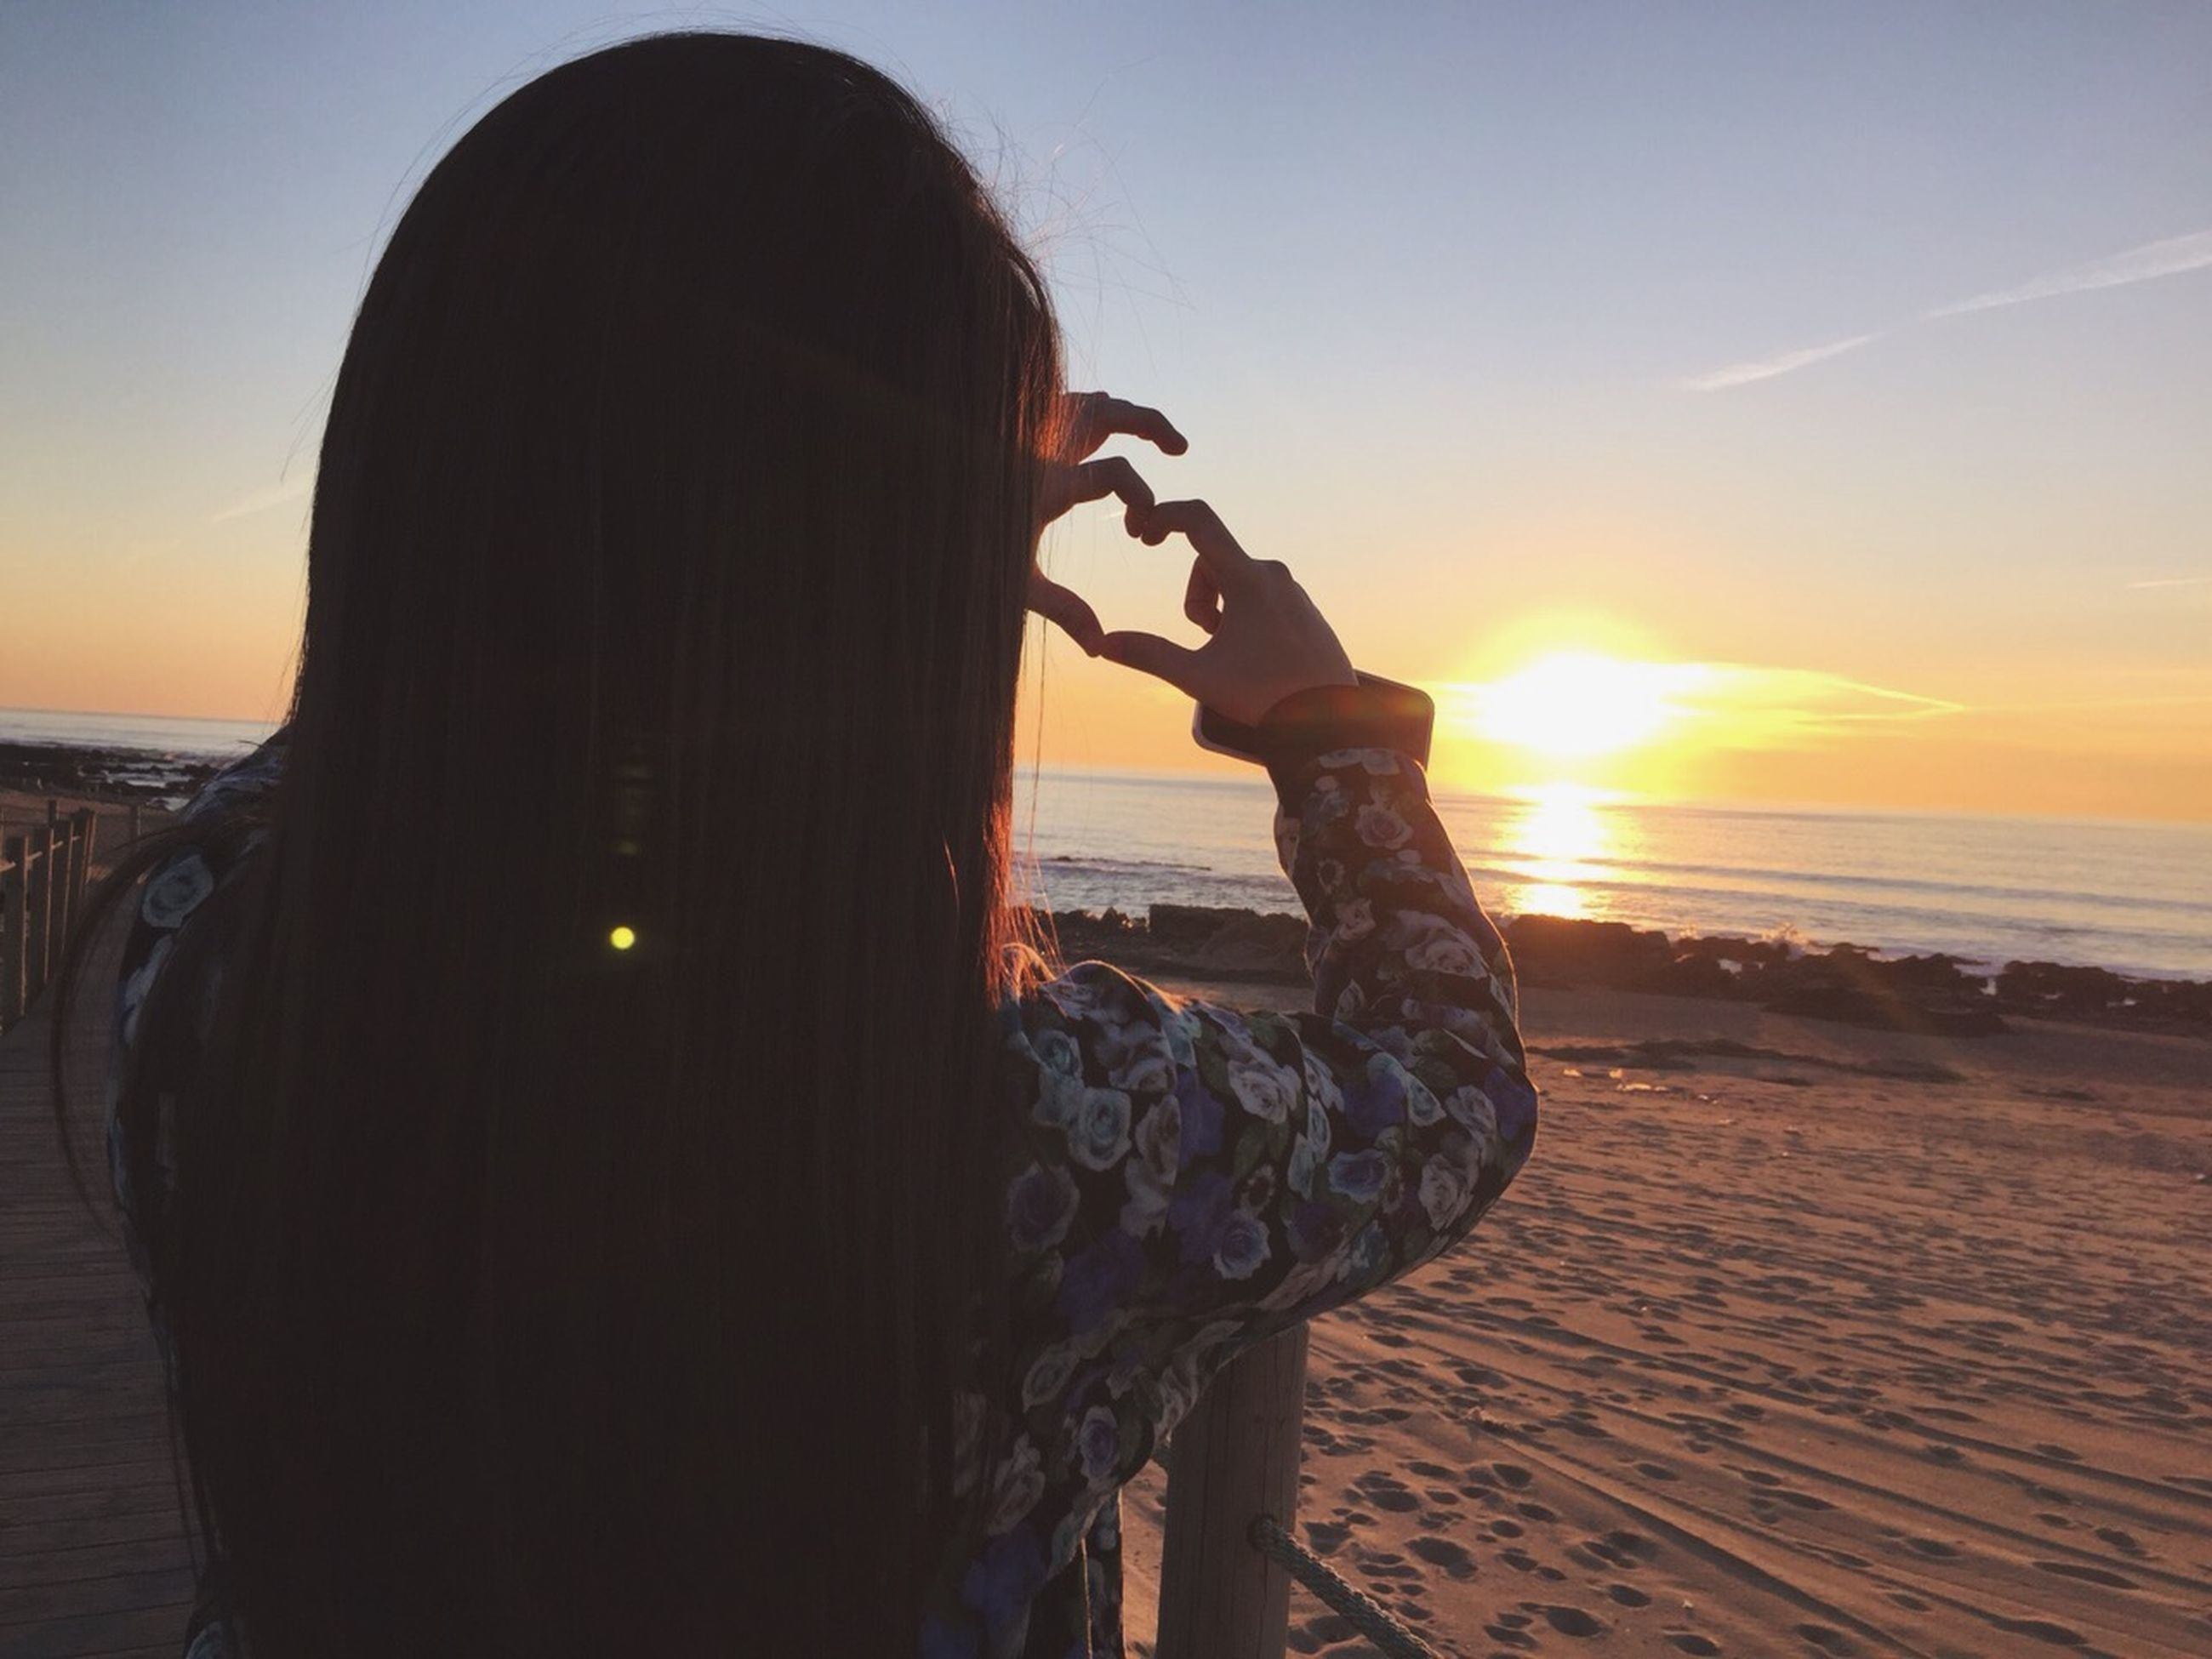 sunset, sea, beach, lifestyles, leisure activity, water, sun, horizon over water, sky, shore, silhouette, sunlight, vacations, orange color, person, scenics, beauty in nature, standing